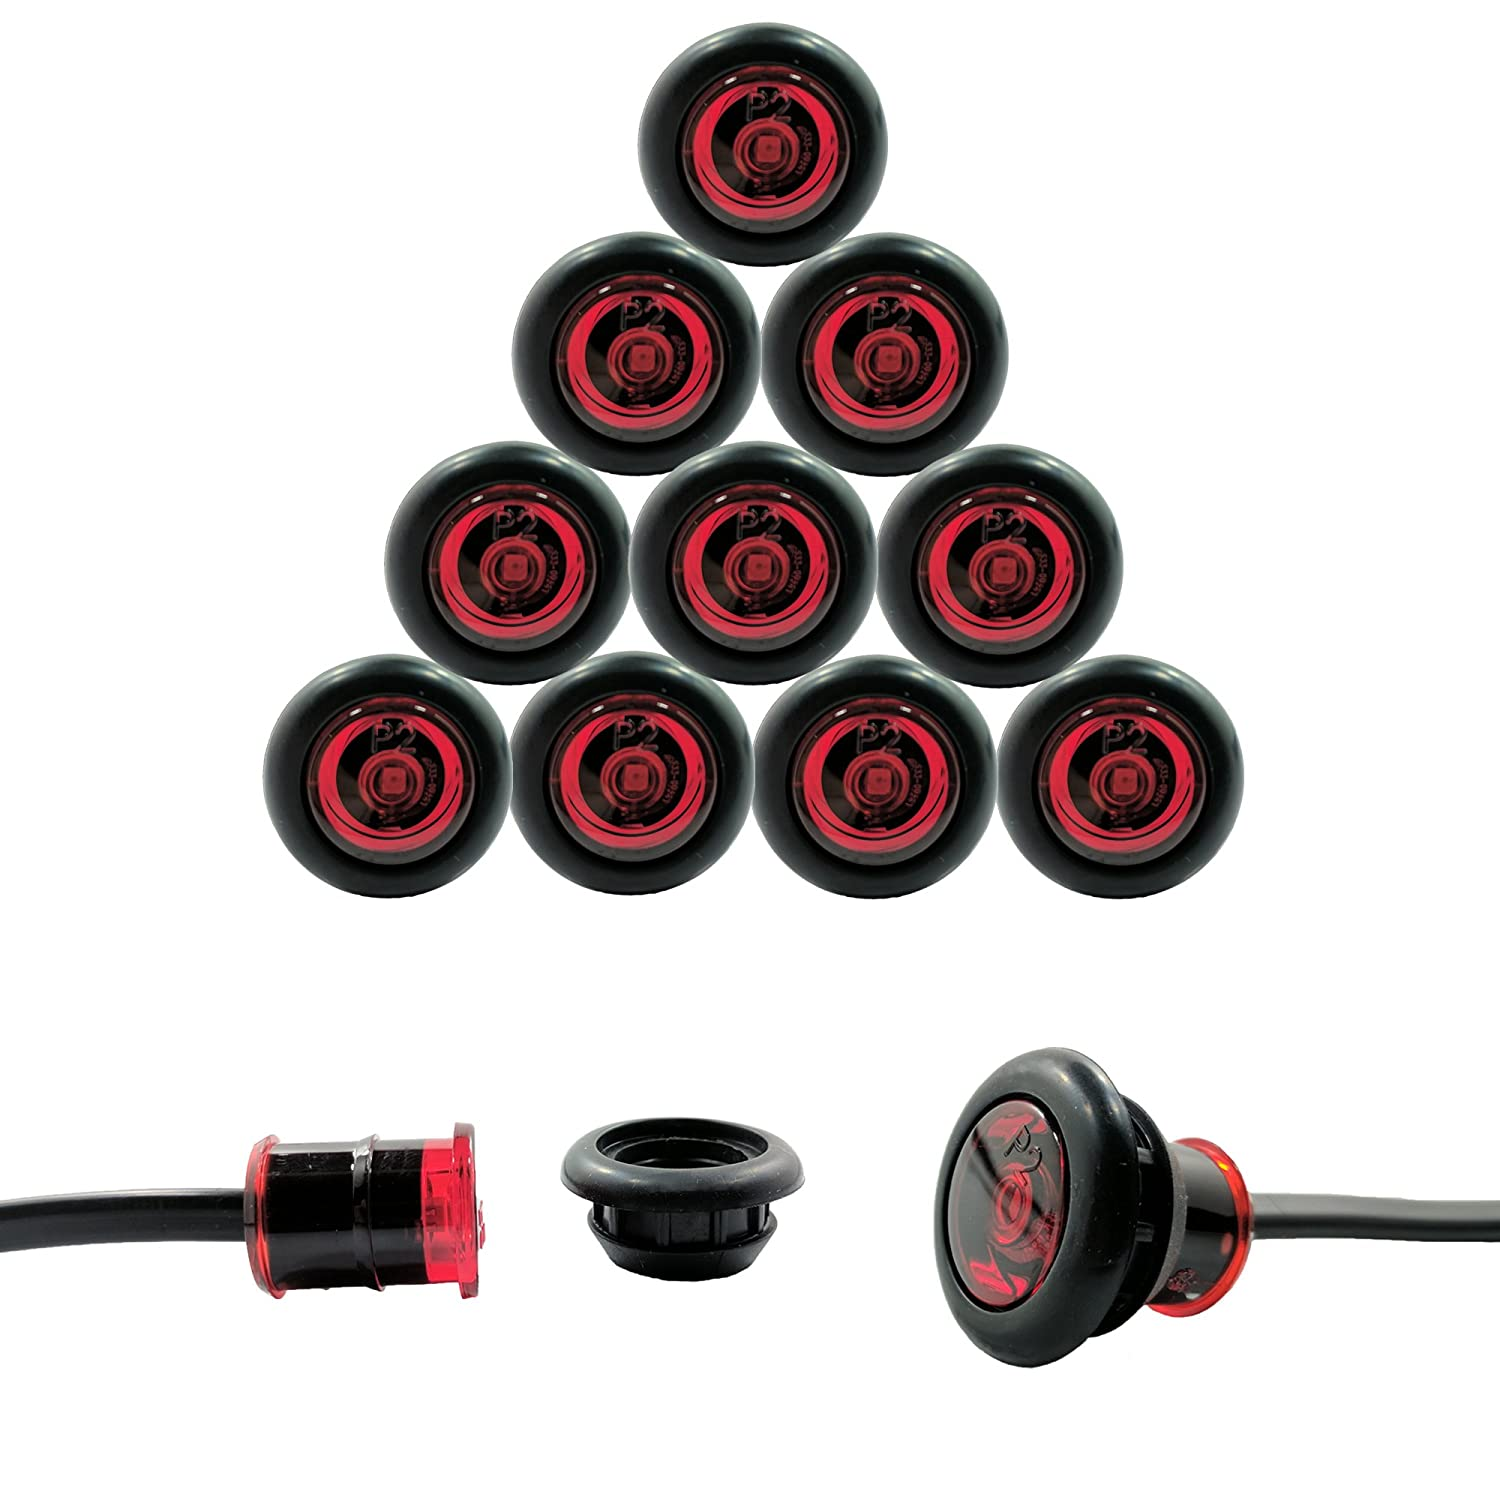 "10 Pack - Red TecNiq USA Made 3/4"" LED Clearance Marker Bullet Grommet Lights (P2 Rated) Inc"